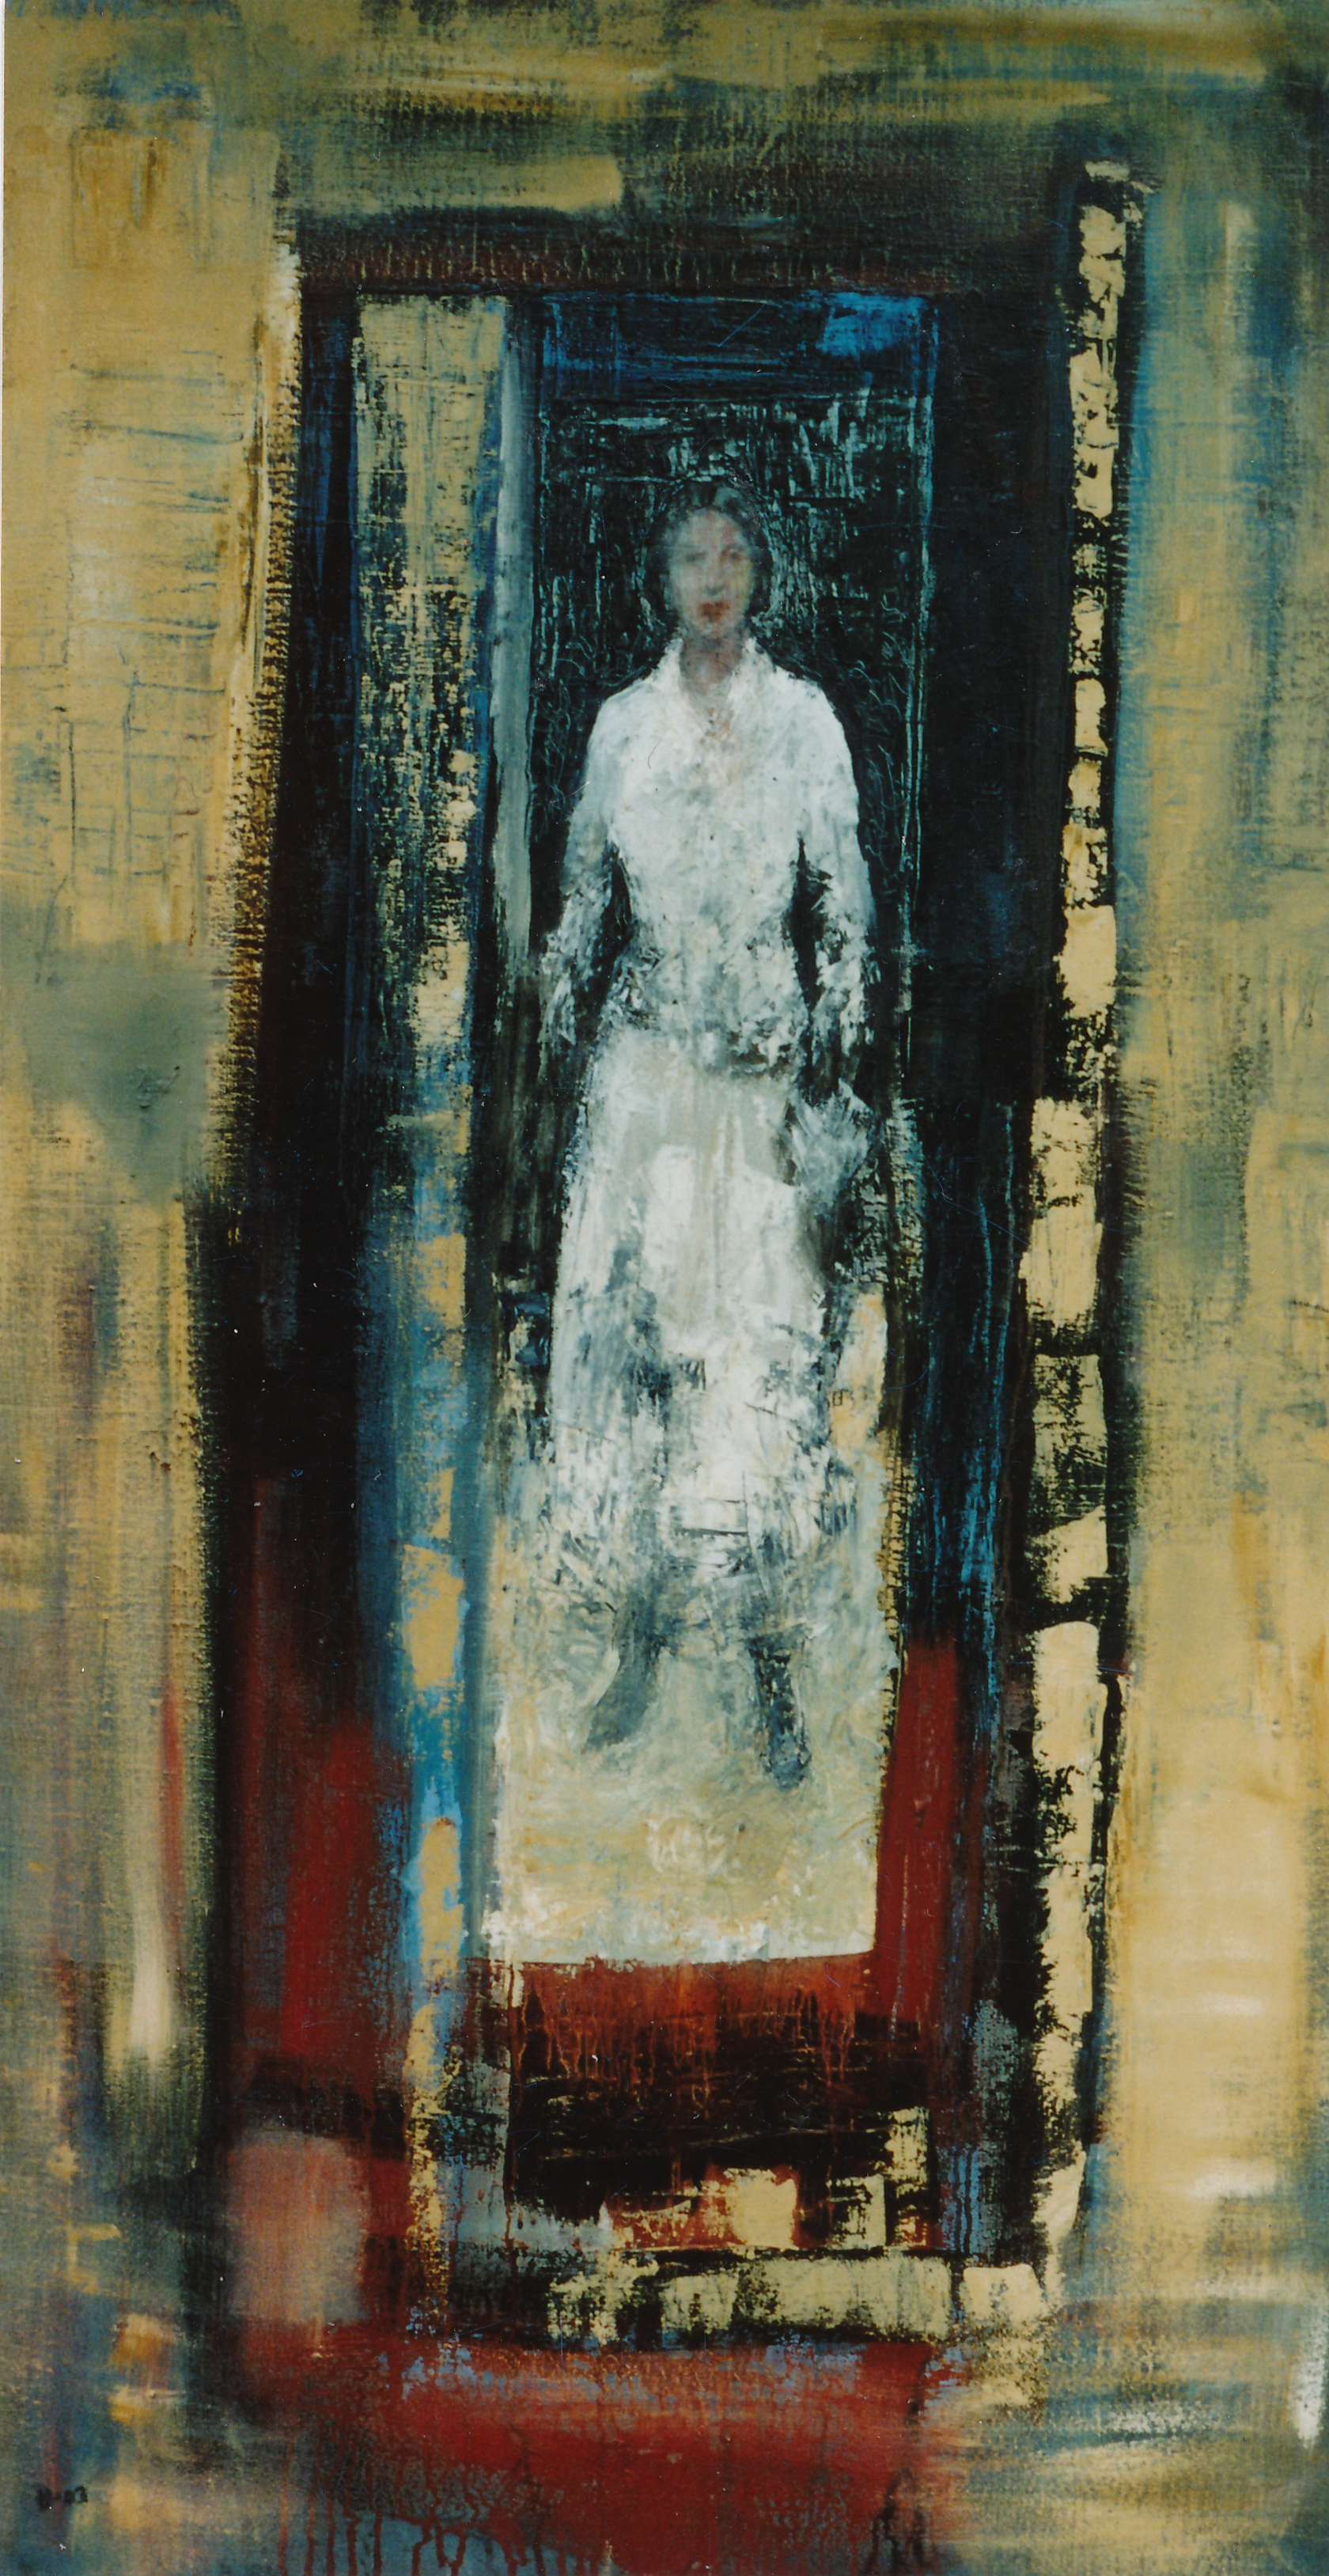 Atonement, 2003, oil on canvas, 80x150cm